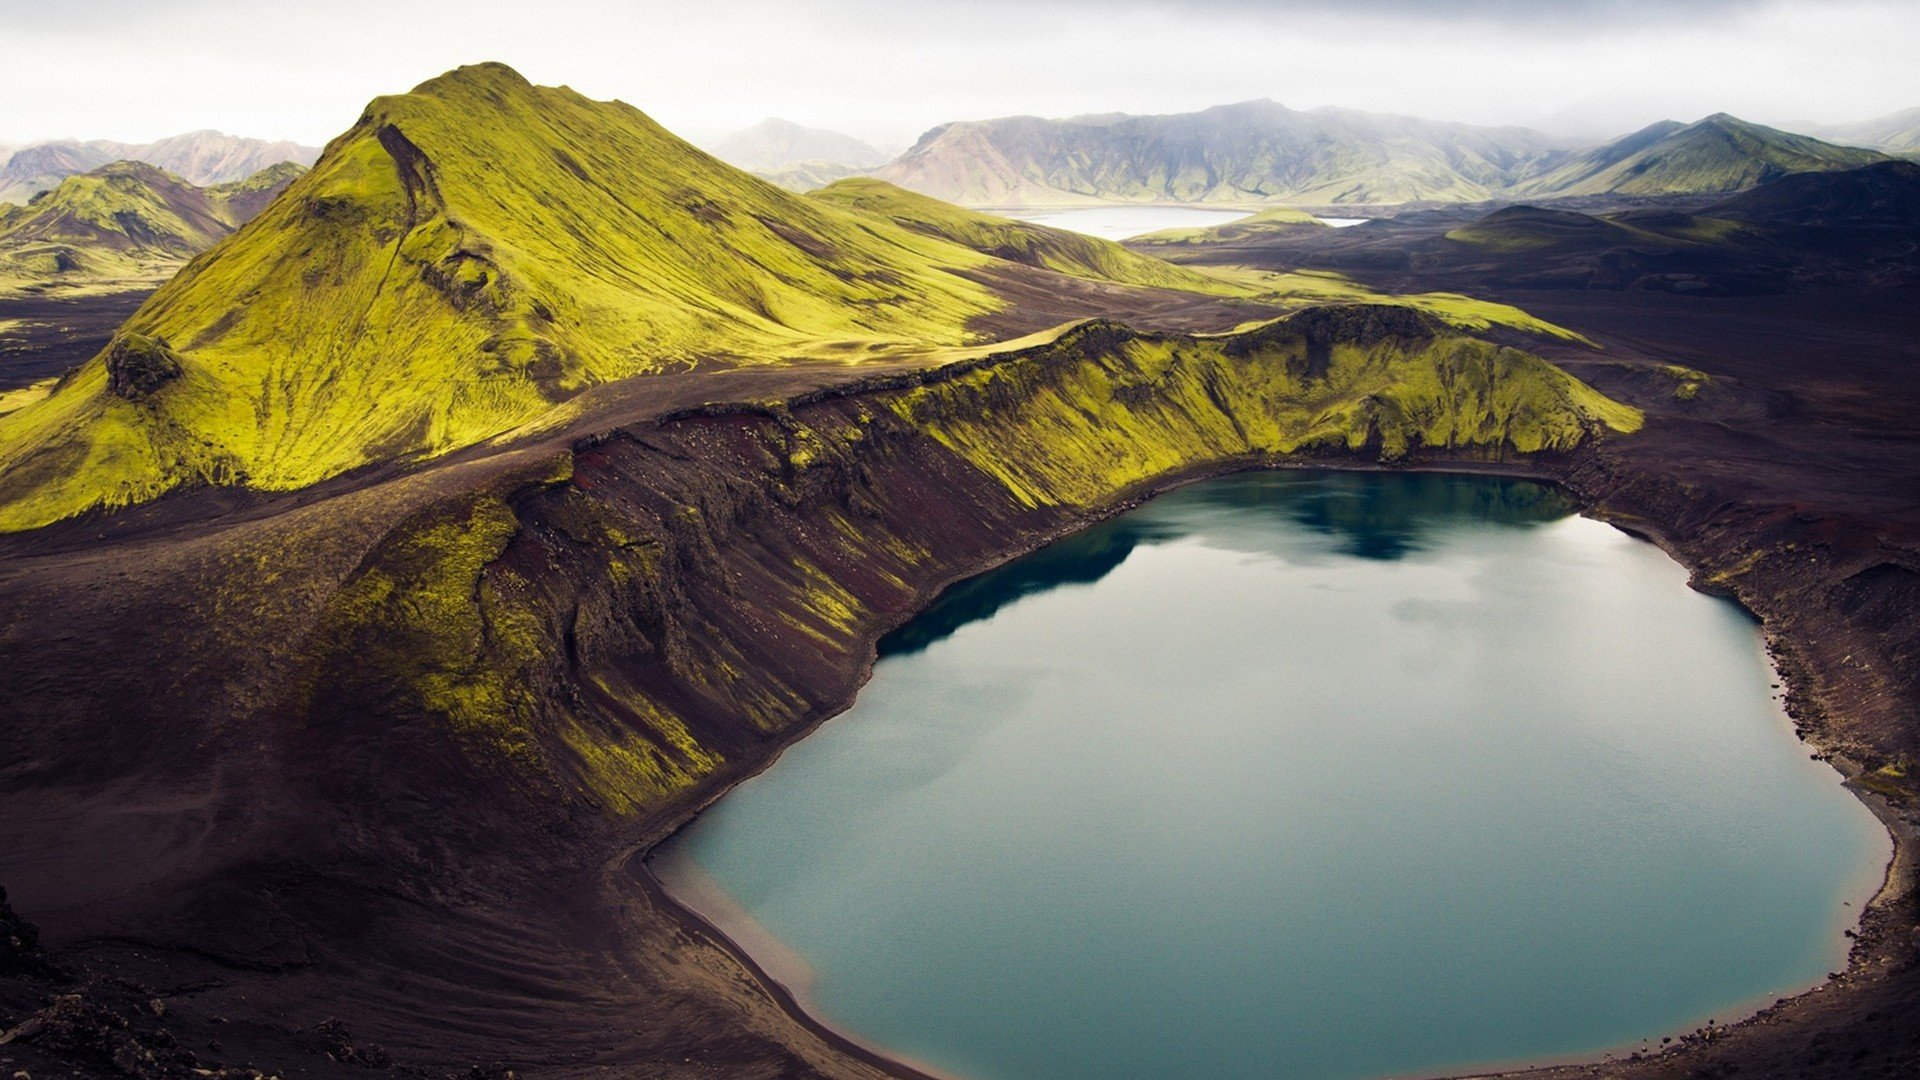 Download National Geographic Landscape Wallpaper Gallery